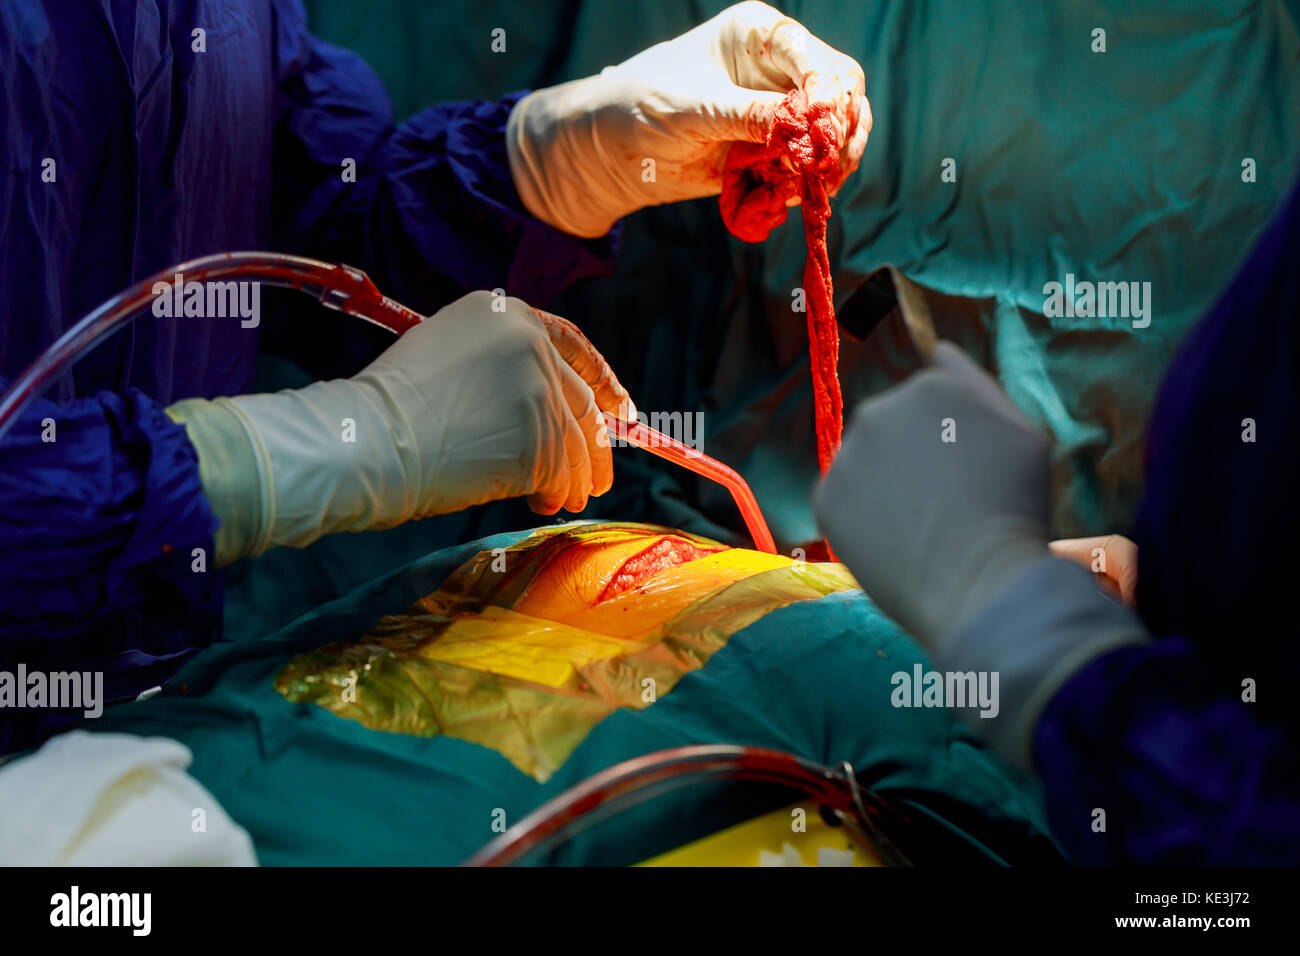 chest during heart surgery Teamwork surgeons during open-heart surgery - Stock Image